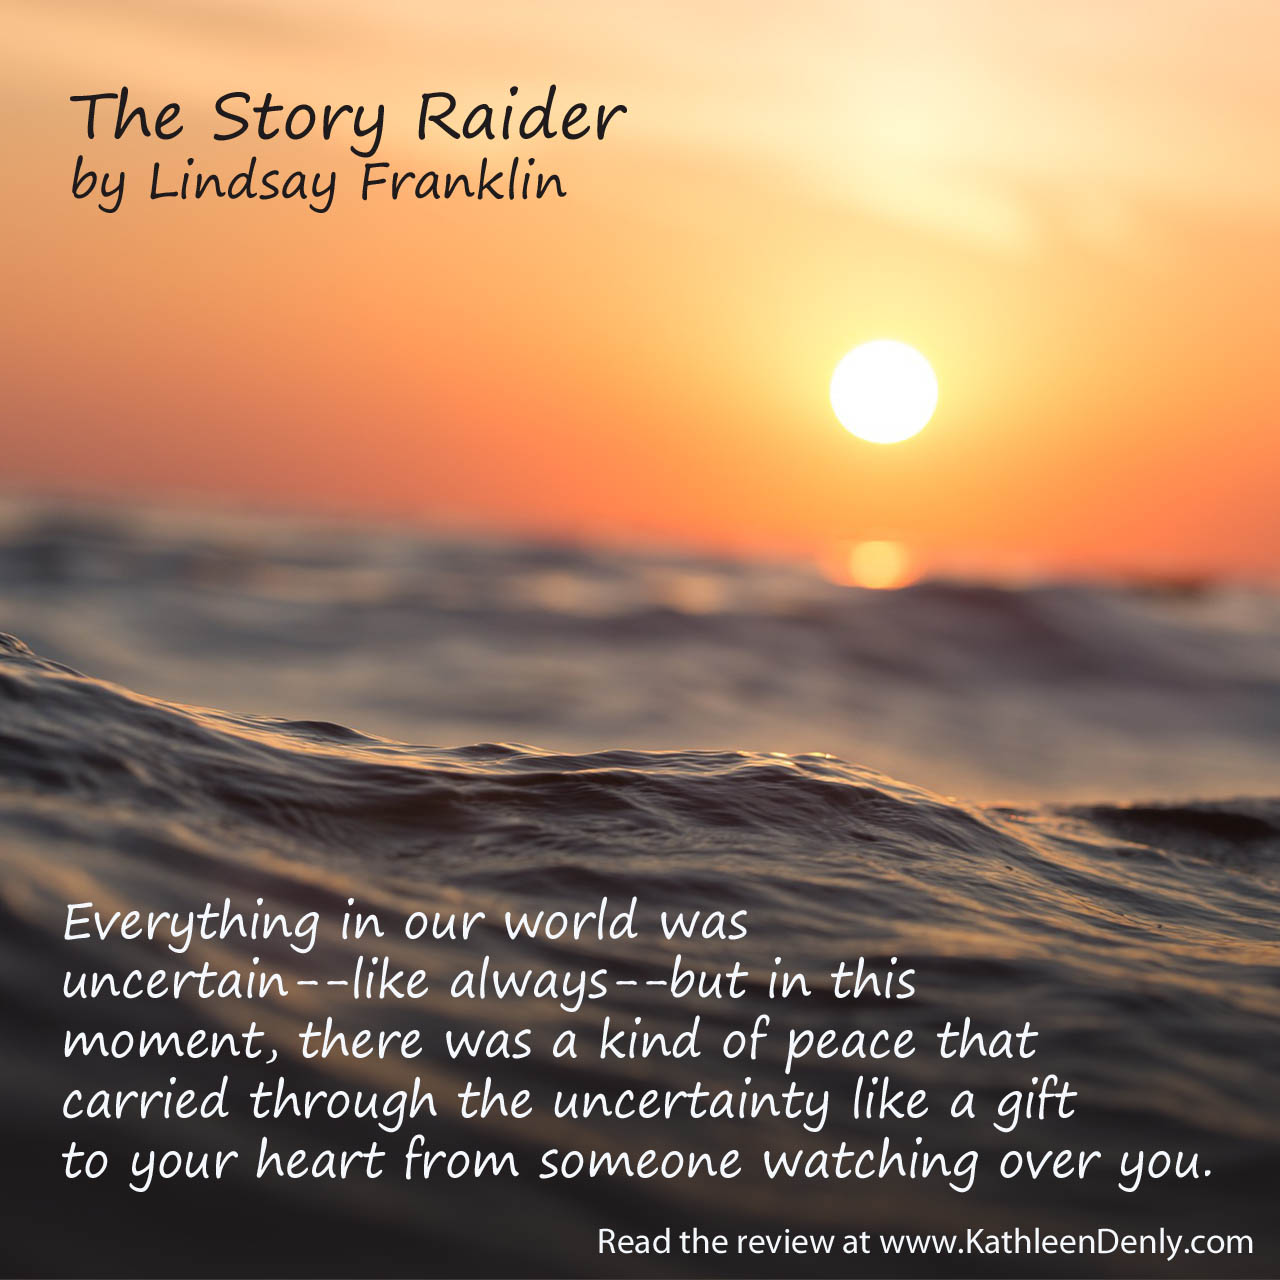 Book Quote - The Story Raider - Someone Watching Over You